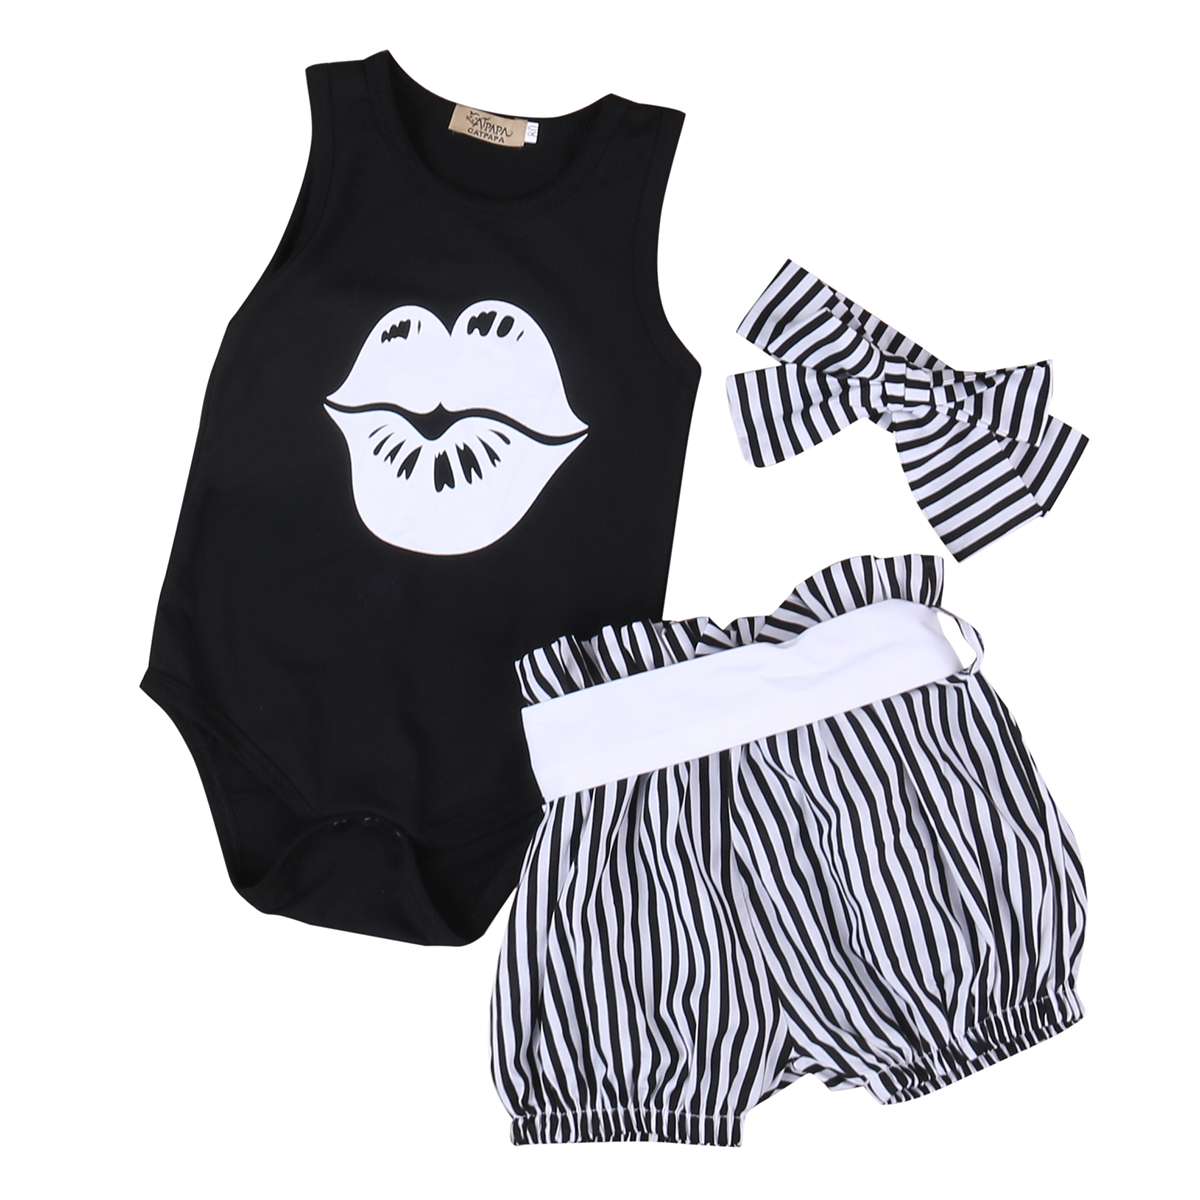 3PCS Set Newborn Baby Girl Clothes 2017 Summer Sleeveless Slip Romper +Striped Bloomers Bottom Outfit Toddler Kids Clothing 2pcs children outfit clothes kids baby girl off shoulder cotton ruffled sleeve tops striped t shirt blue denim jeans sunsuit set